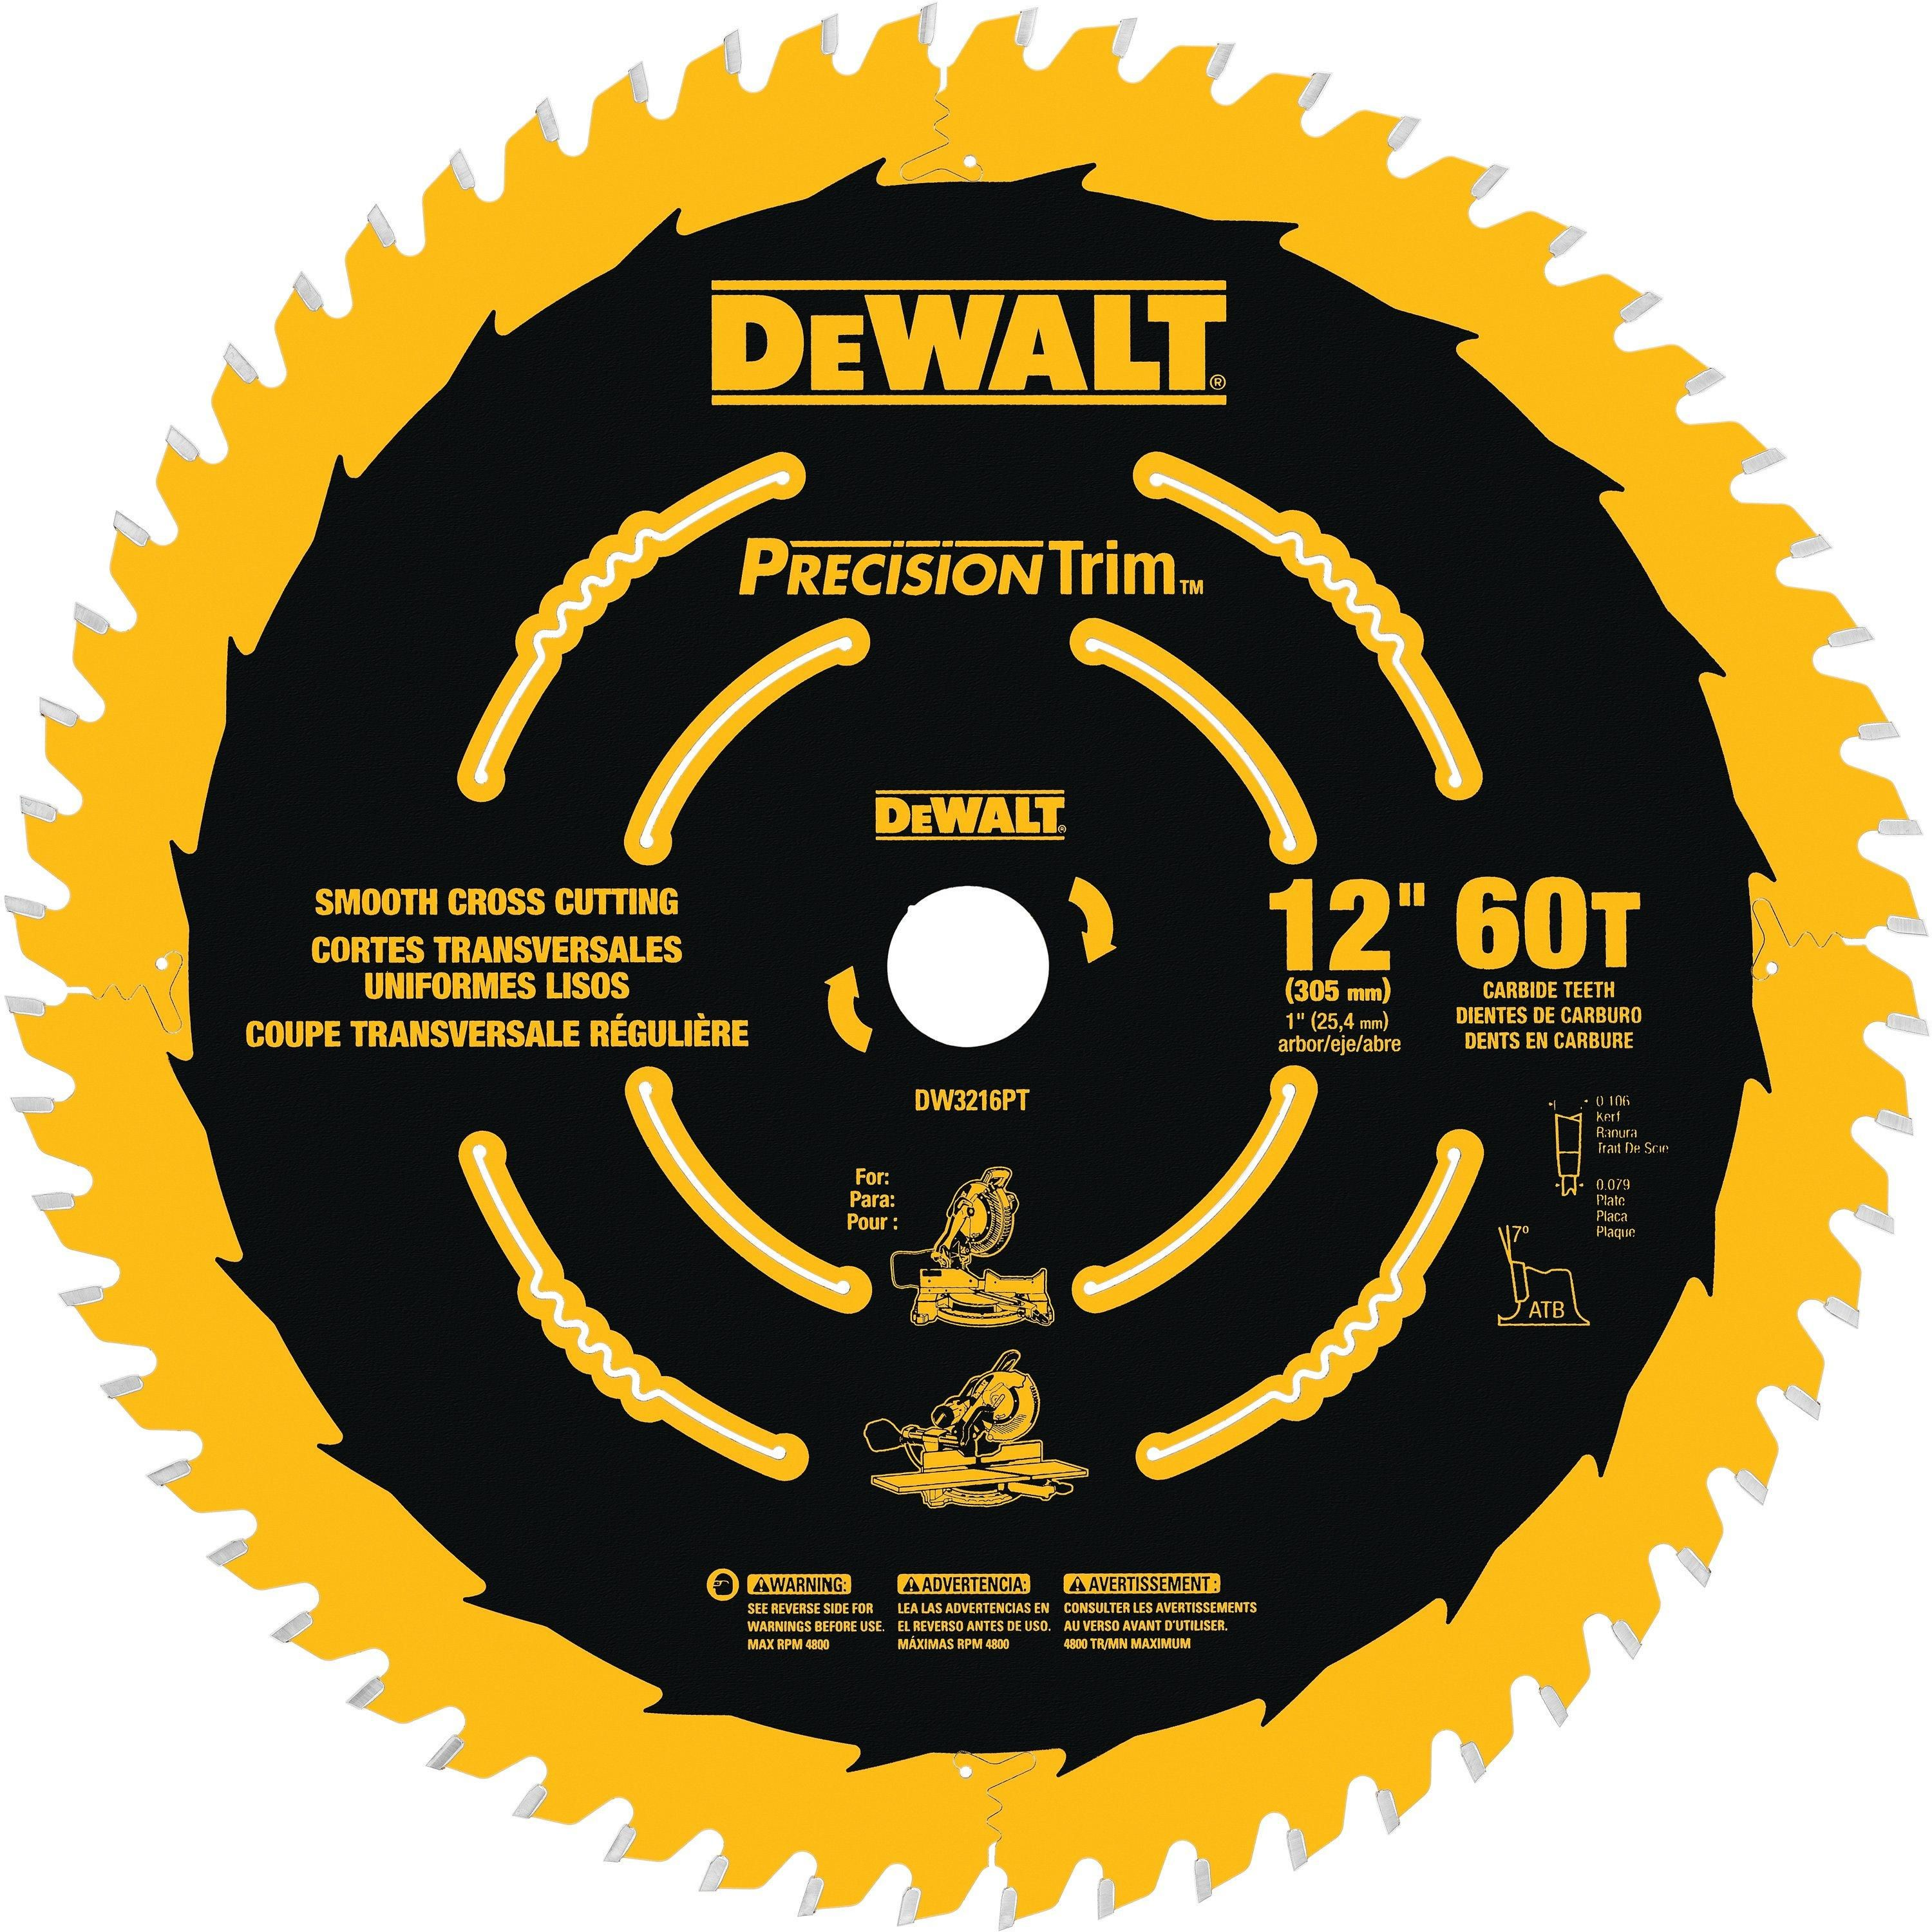 Dewalt 12in 60 Tooth Precision Trim Blade Circular Saw Blades Table Saw Blades Dewalt Circular Saw